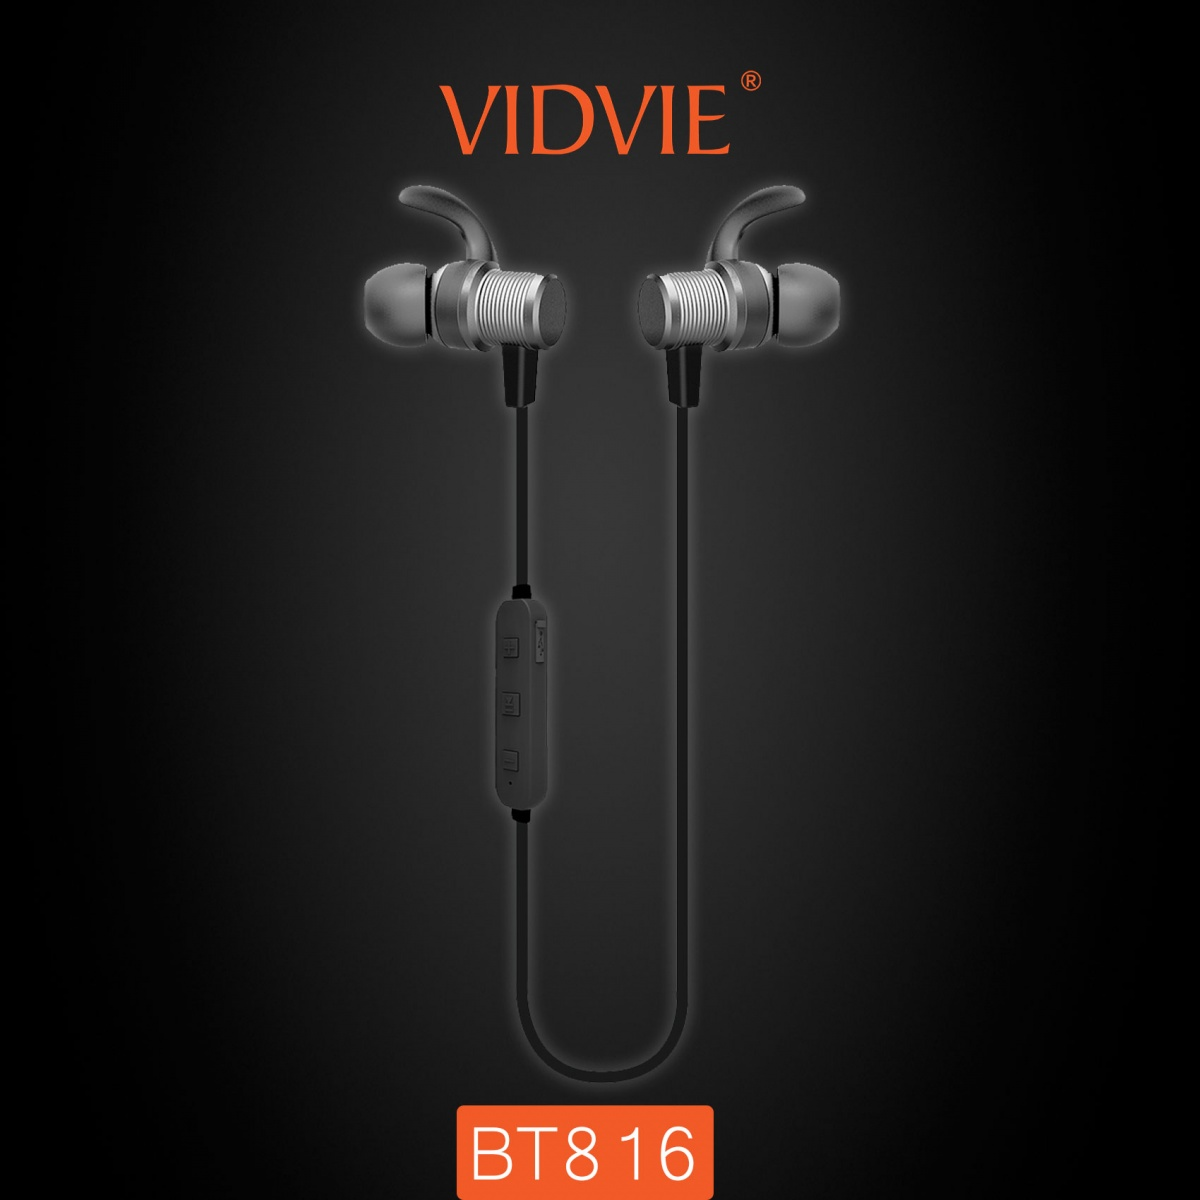 Vidvie 816 Sports Bluetooth Headset - Gray